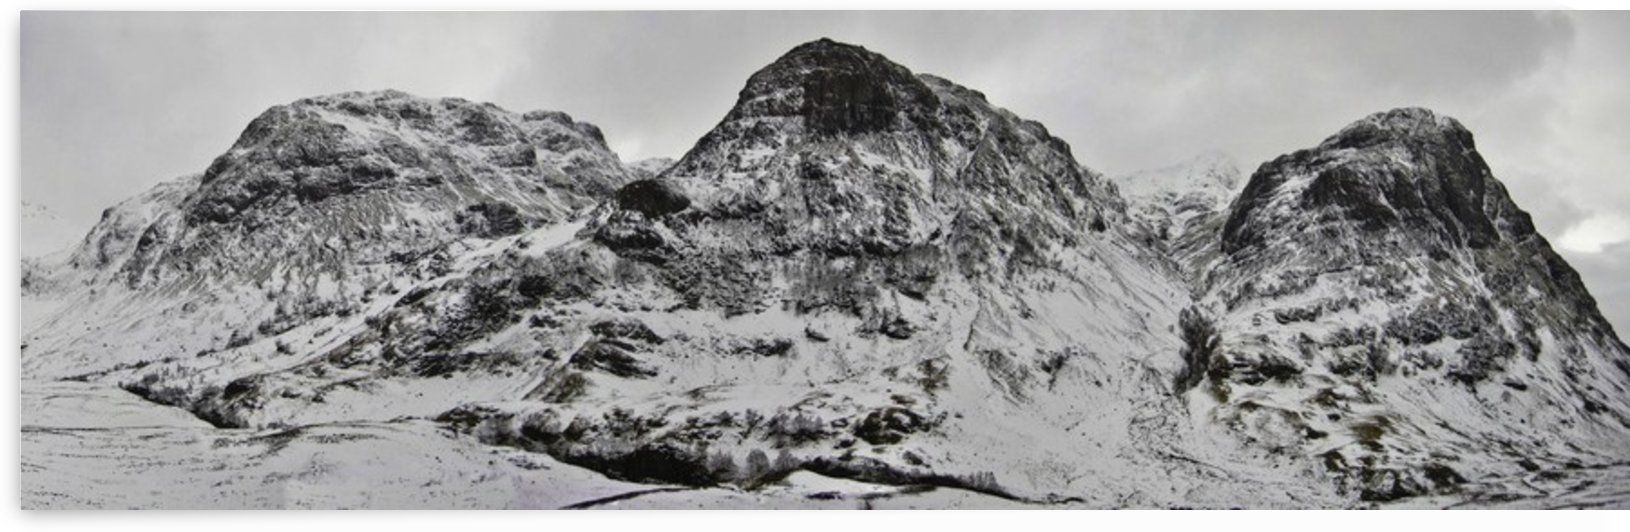 The Three Sisters, Glencoe by Fergus Maitland